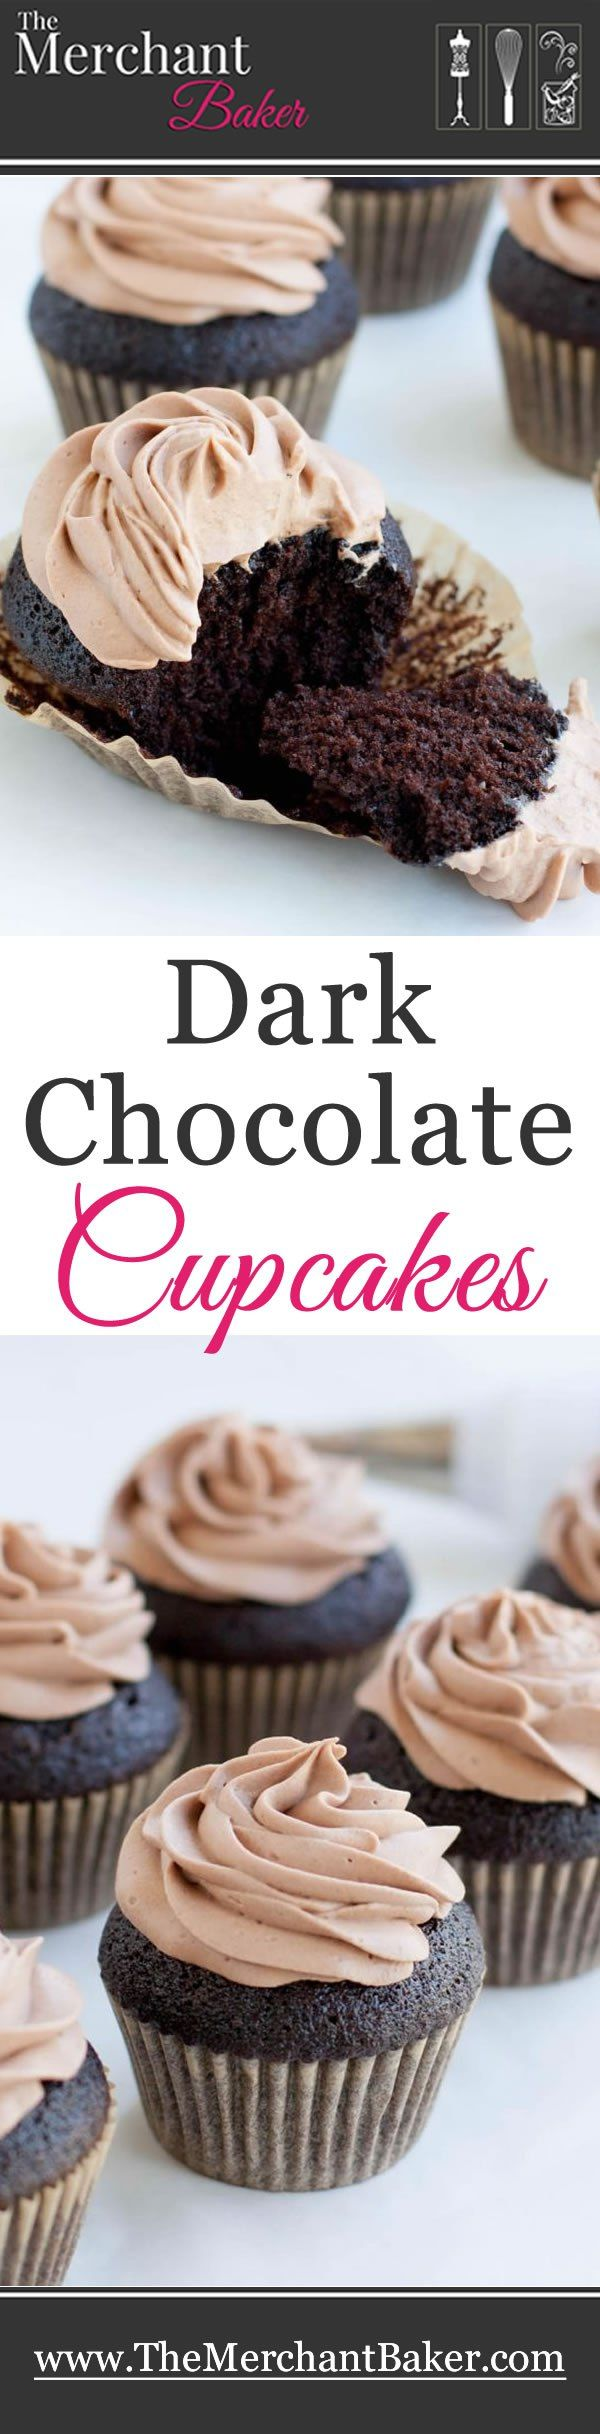 Dark Chocolate Cupcakes. An easy one bowl cake. Incredibly moist, full of chocolate flavor then topped with Chocolate Whipped Cream Cream Cheese Frosting.